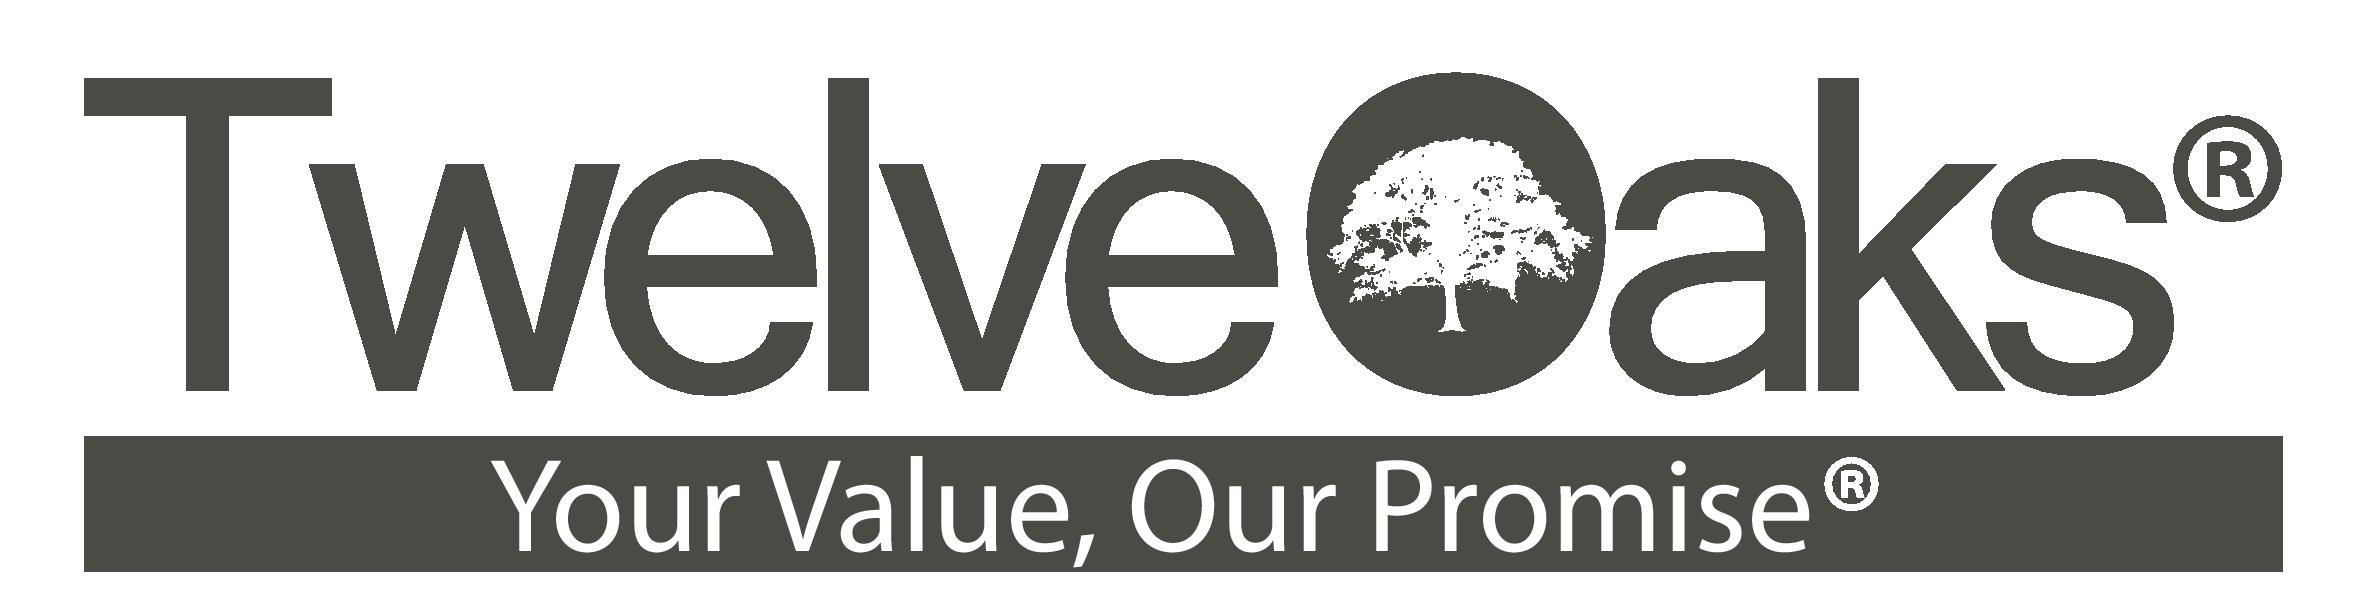 Twelve@aks Your Value, Our Promise®